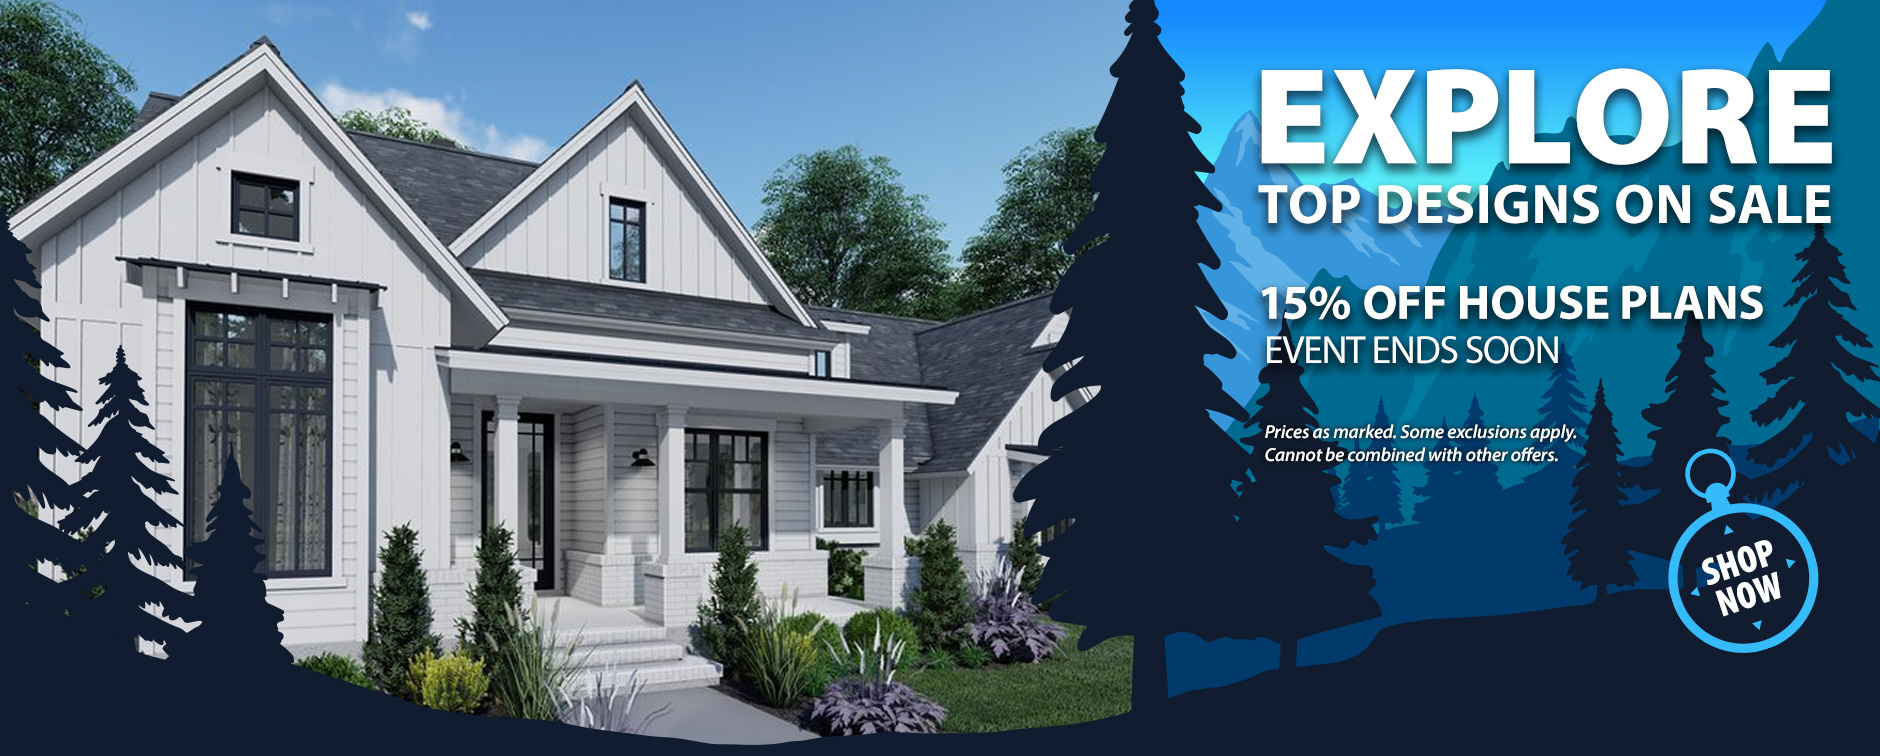 Take 15% Off House Plans Today